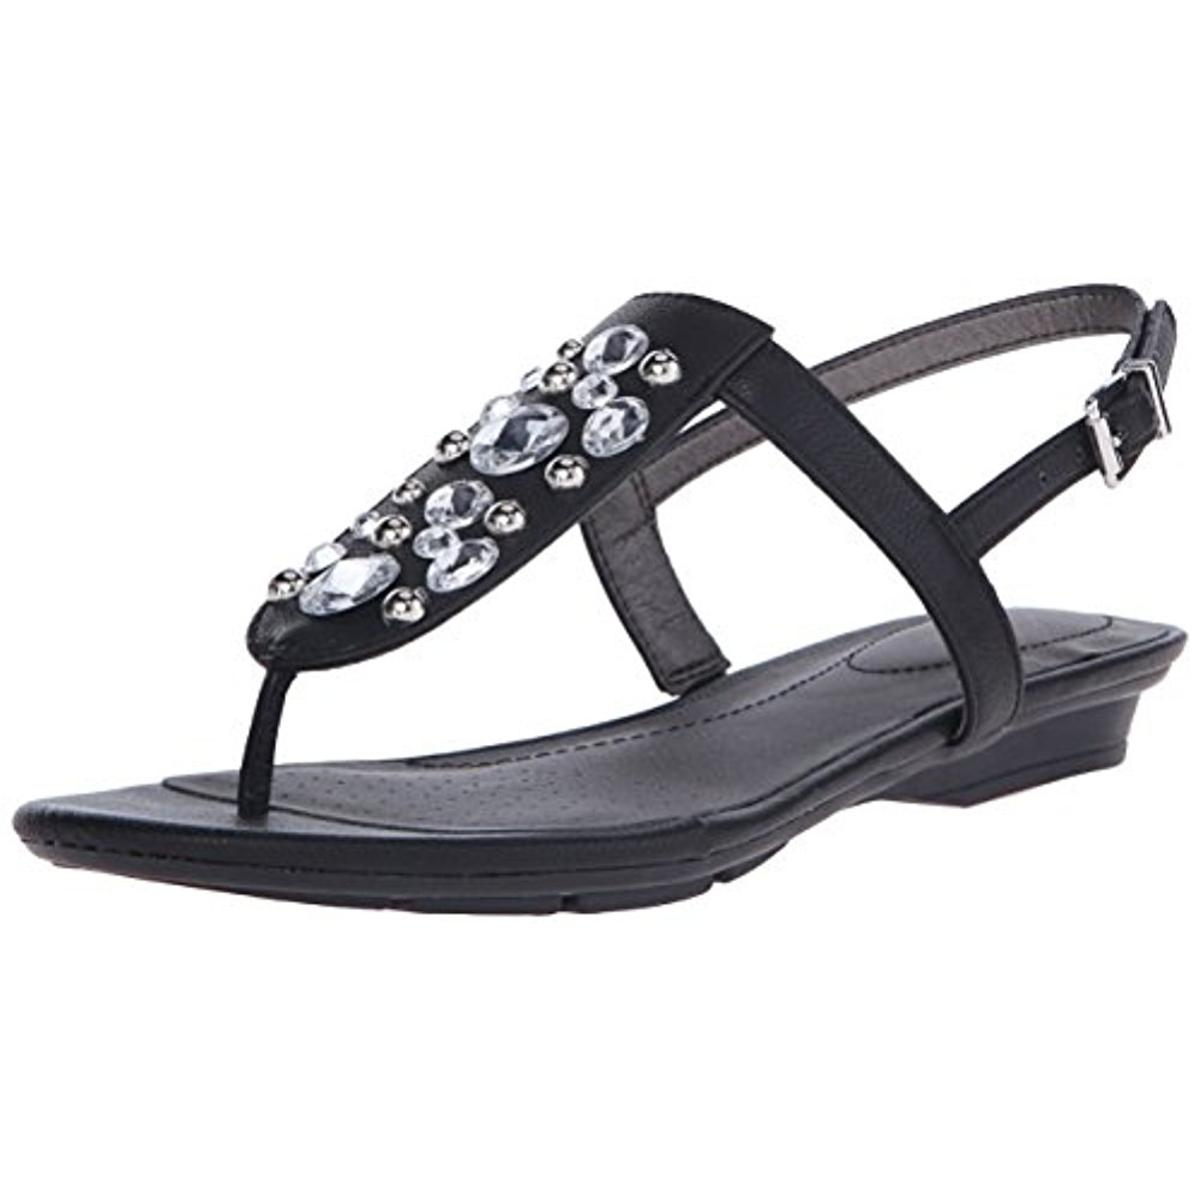 Lifestride Womens Envy Faux Leather Embellished Slingback Sandals by LifeStride